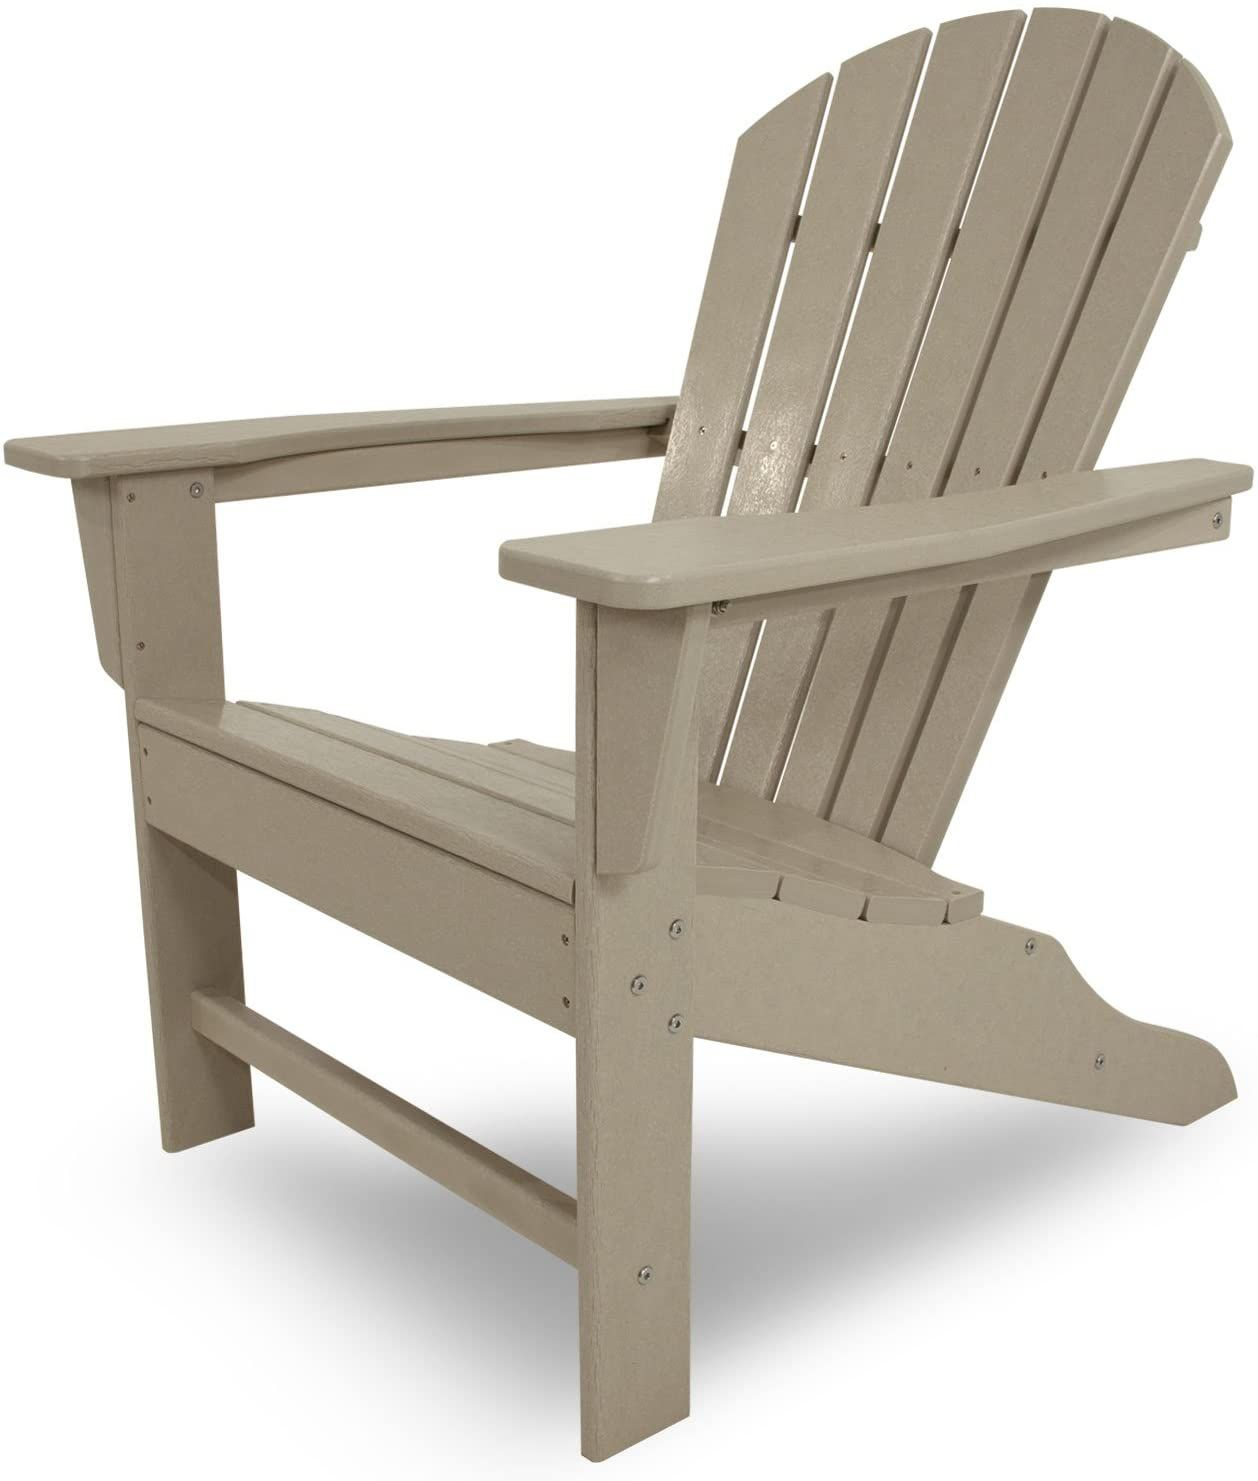 10 Best Plastic Adirondack Chairs In 2020 Cool Things To Buy 247 In 2020 Trex Outdoor Furniture Classic Outdoor Furniture Beach Adirondack Chairs